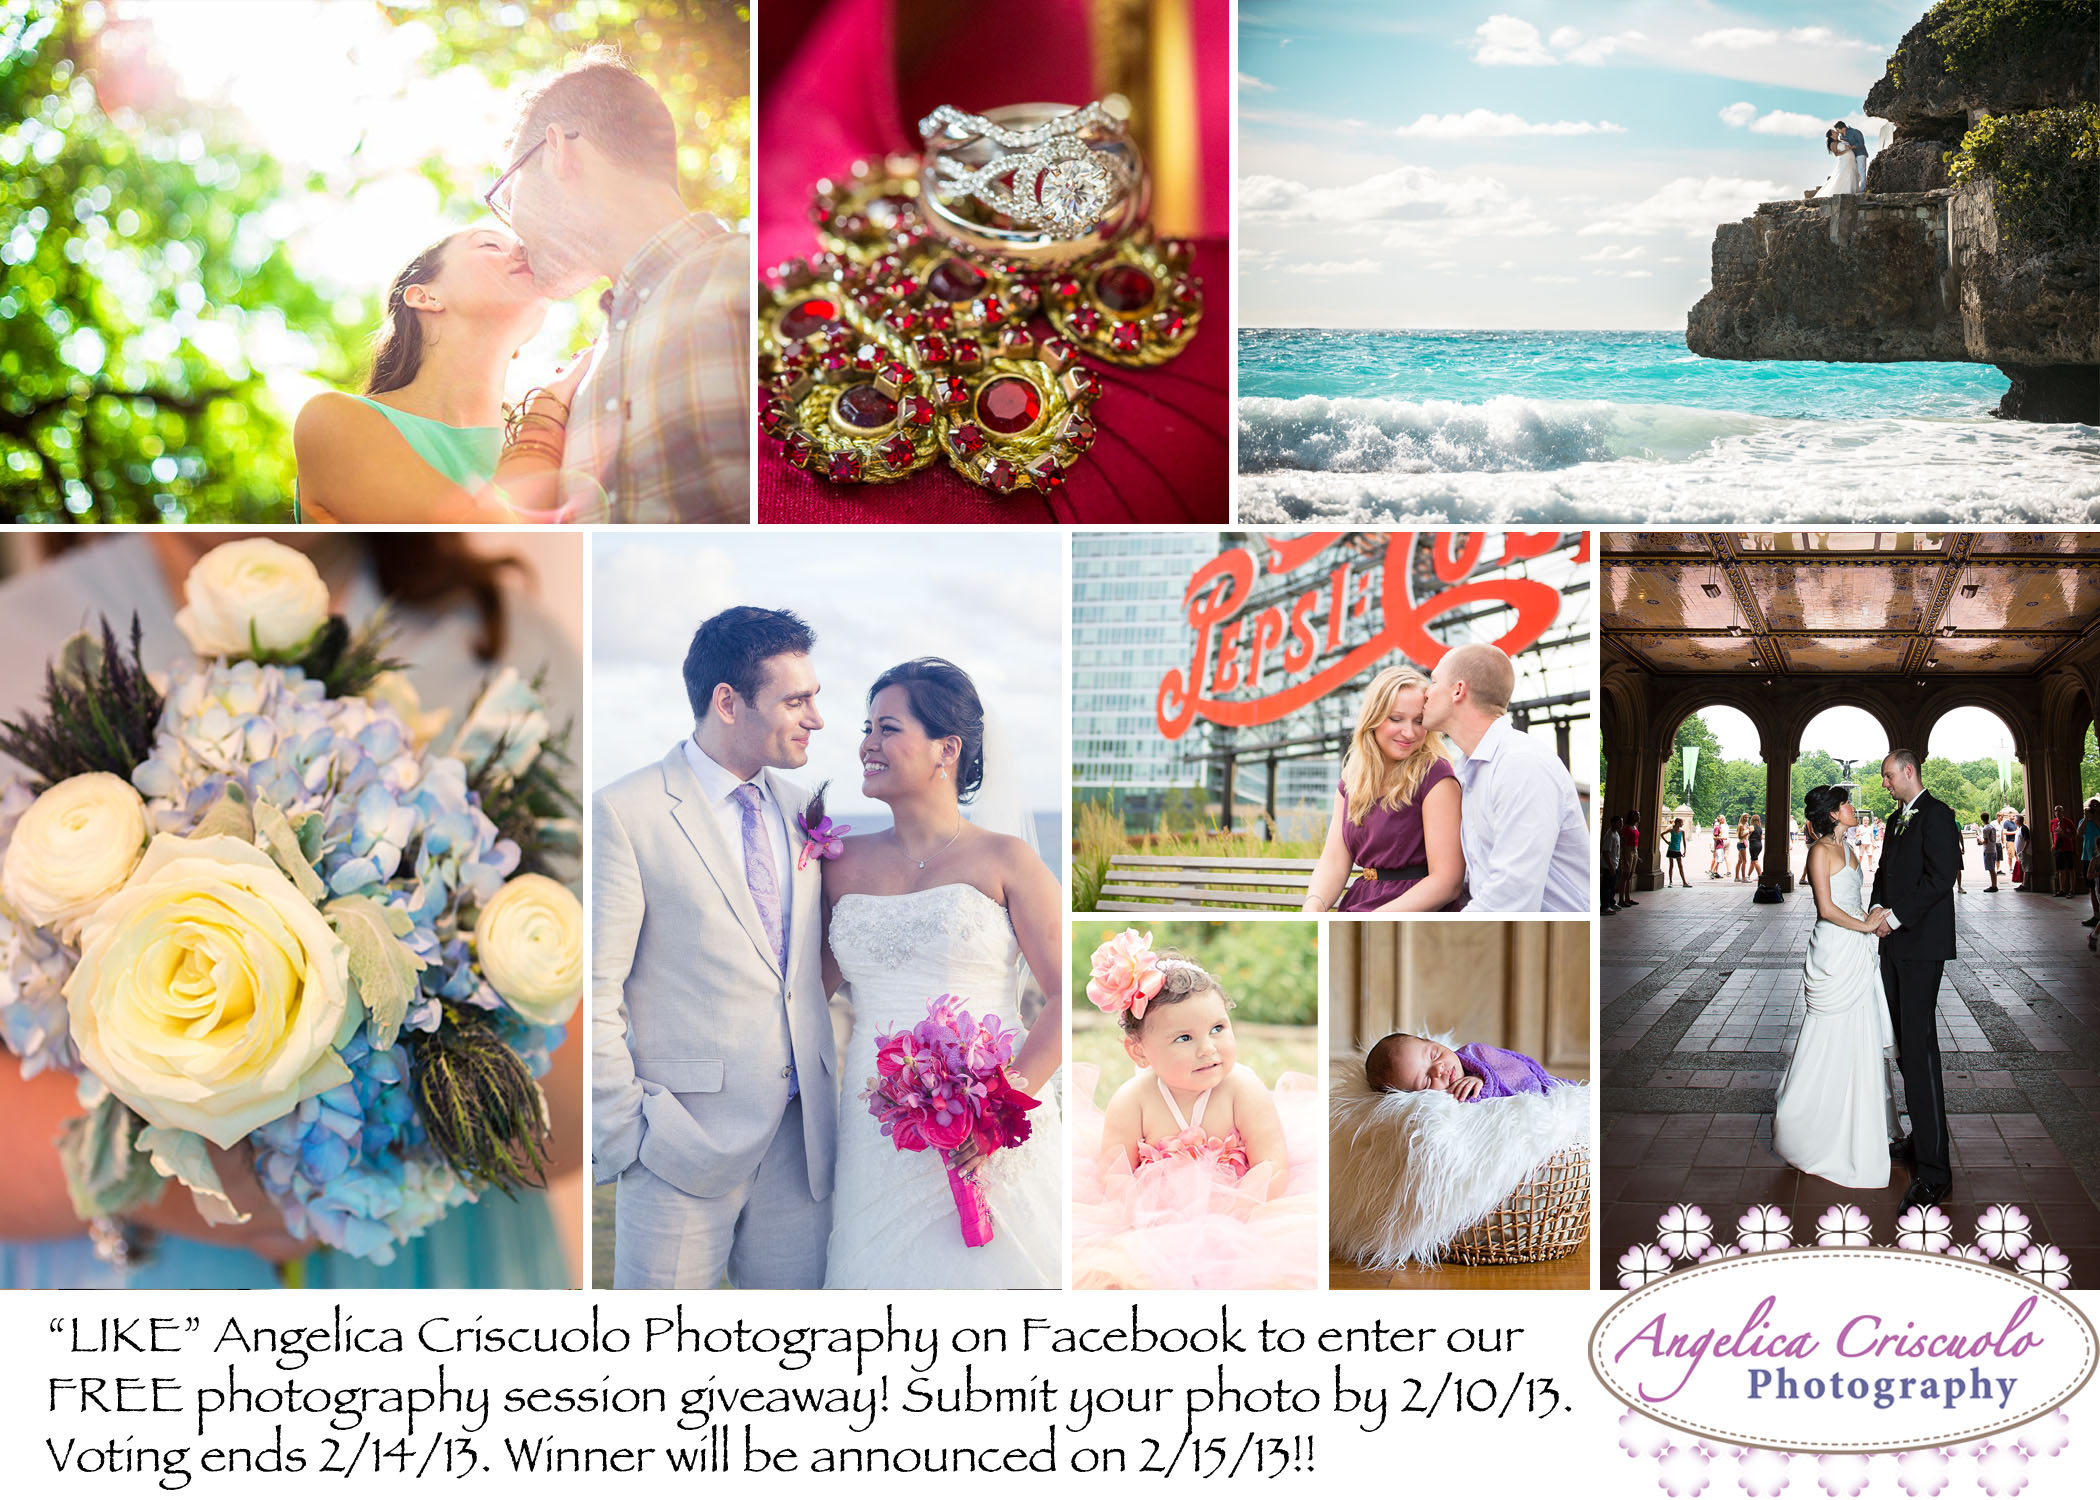 Facebook Fan photo session giveaway by Angelica Criscuolo Photography